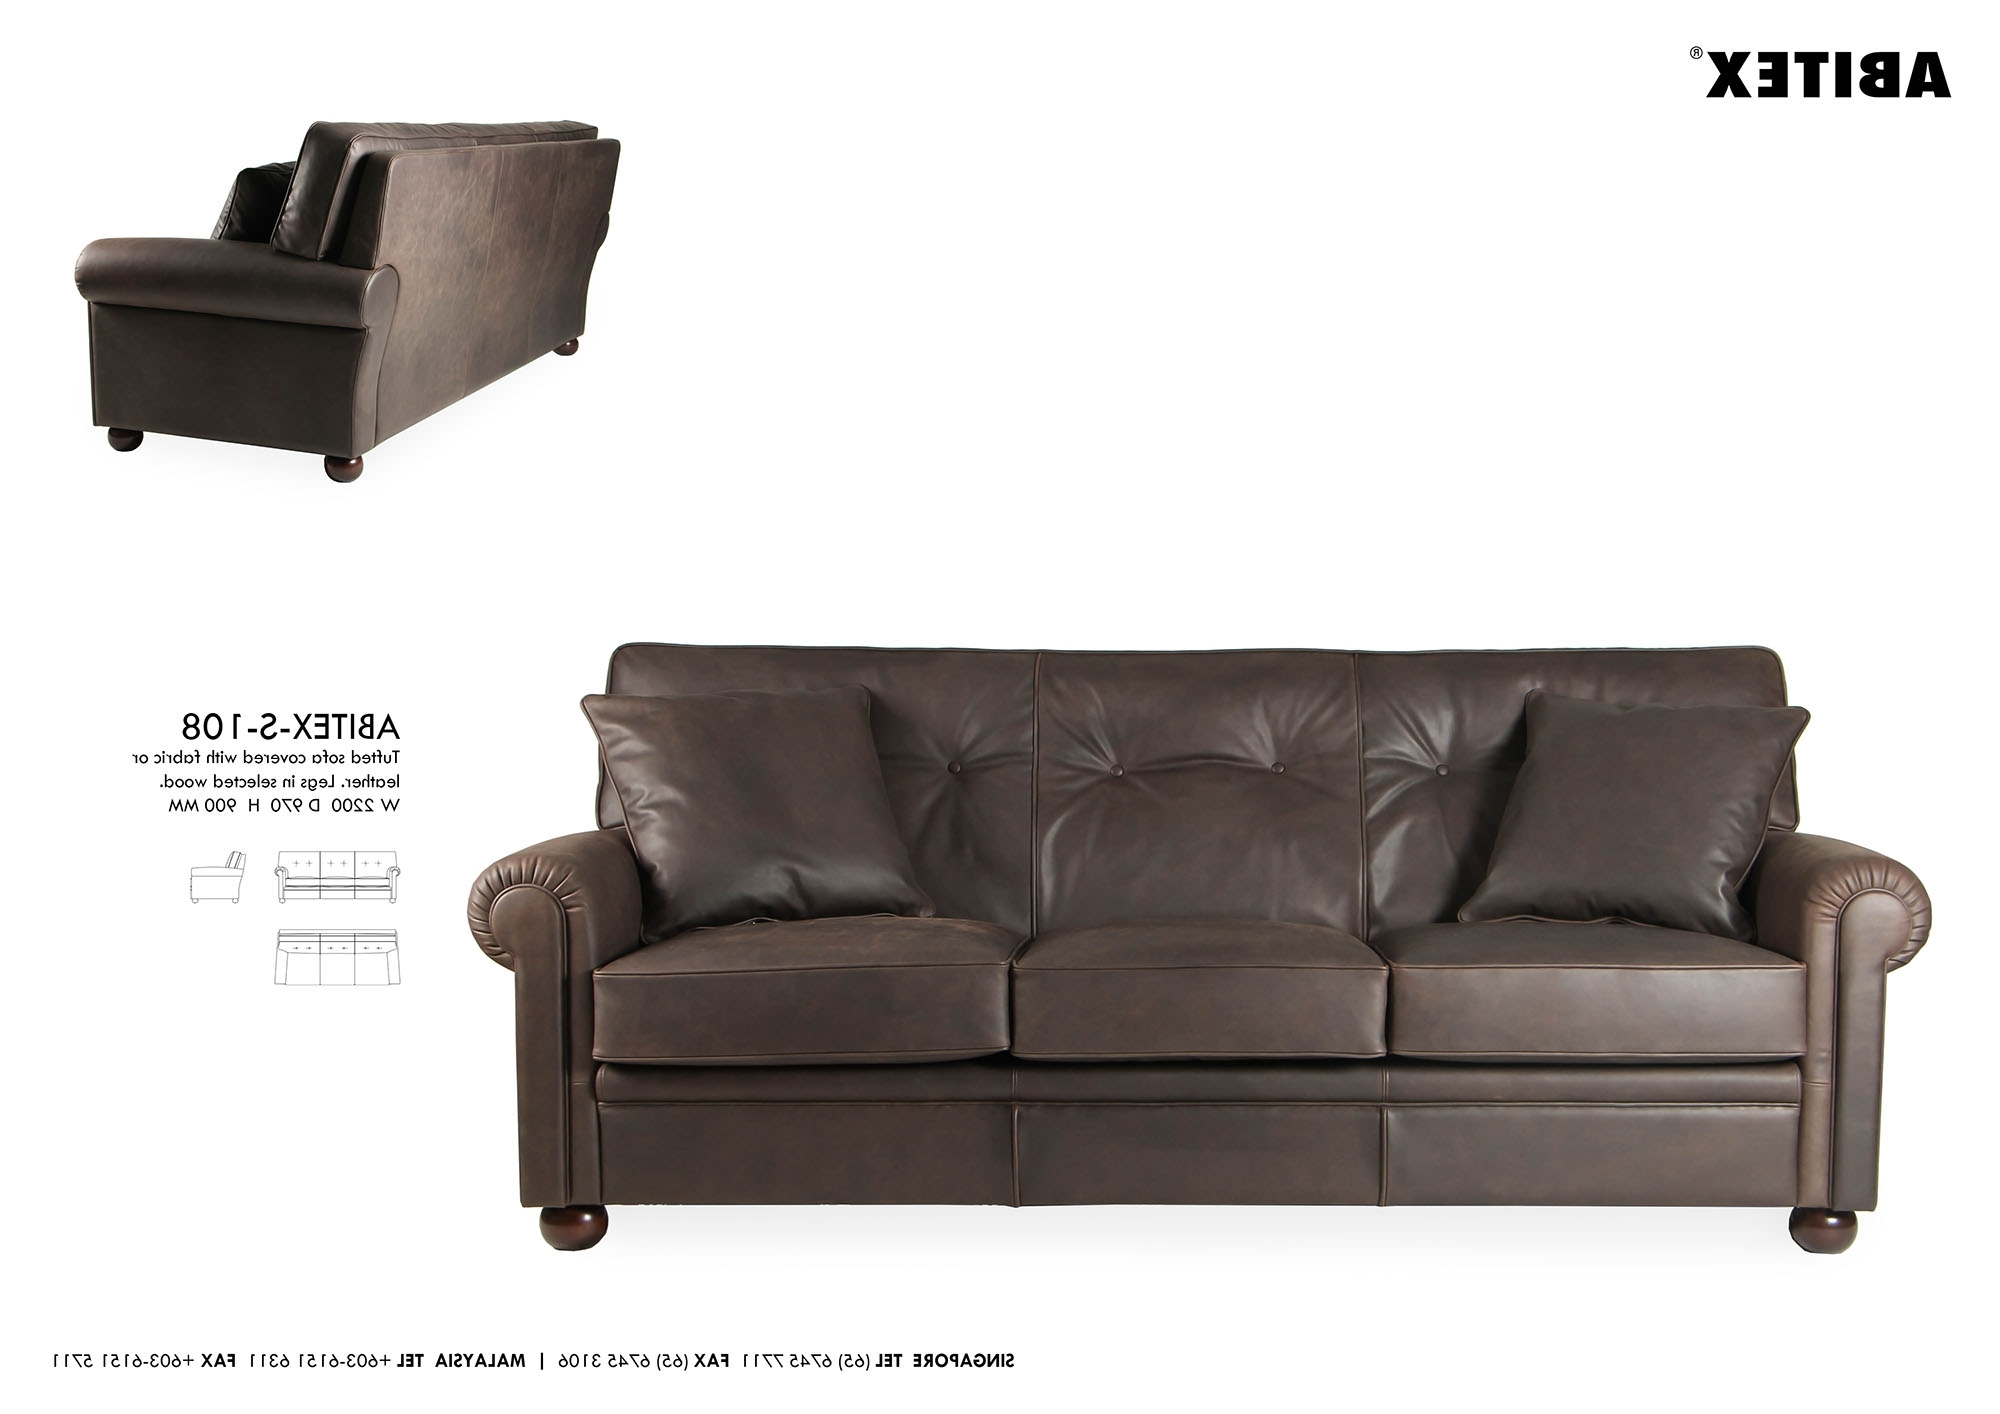 Well Known Dufresne Sectional Sofas With Regard To Furniture : Button Tufted Fabric Sofa Sofa Dallas Furniture Ottawa (View 13 of 15)